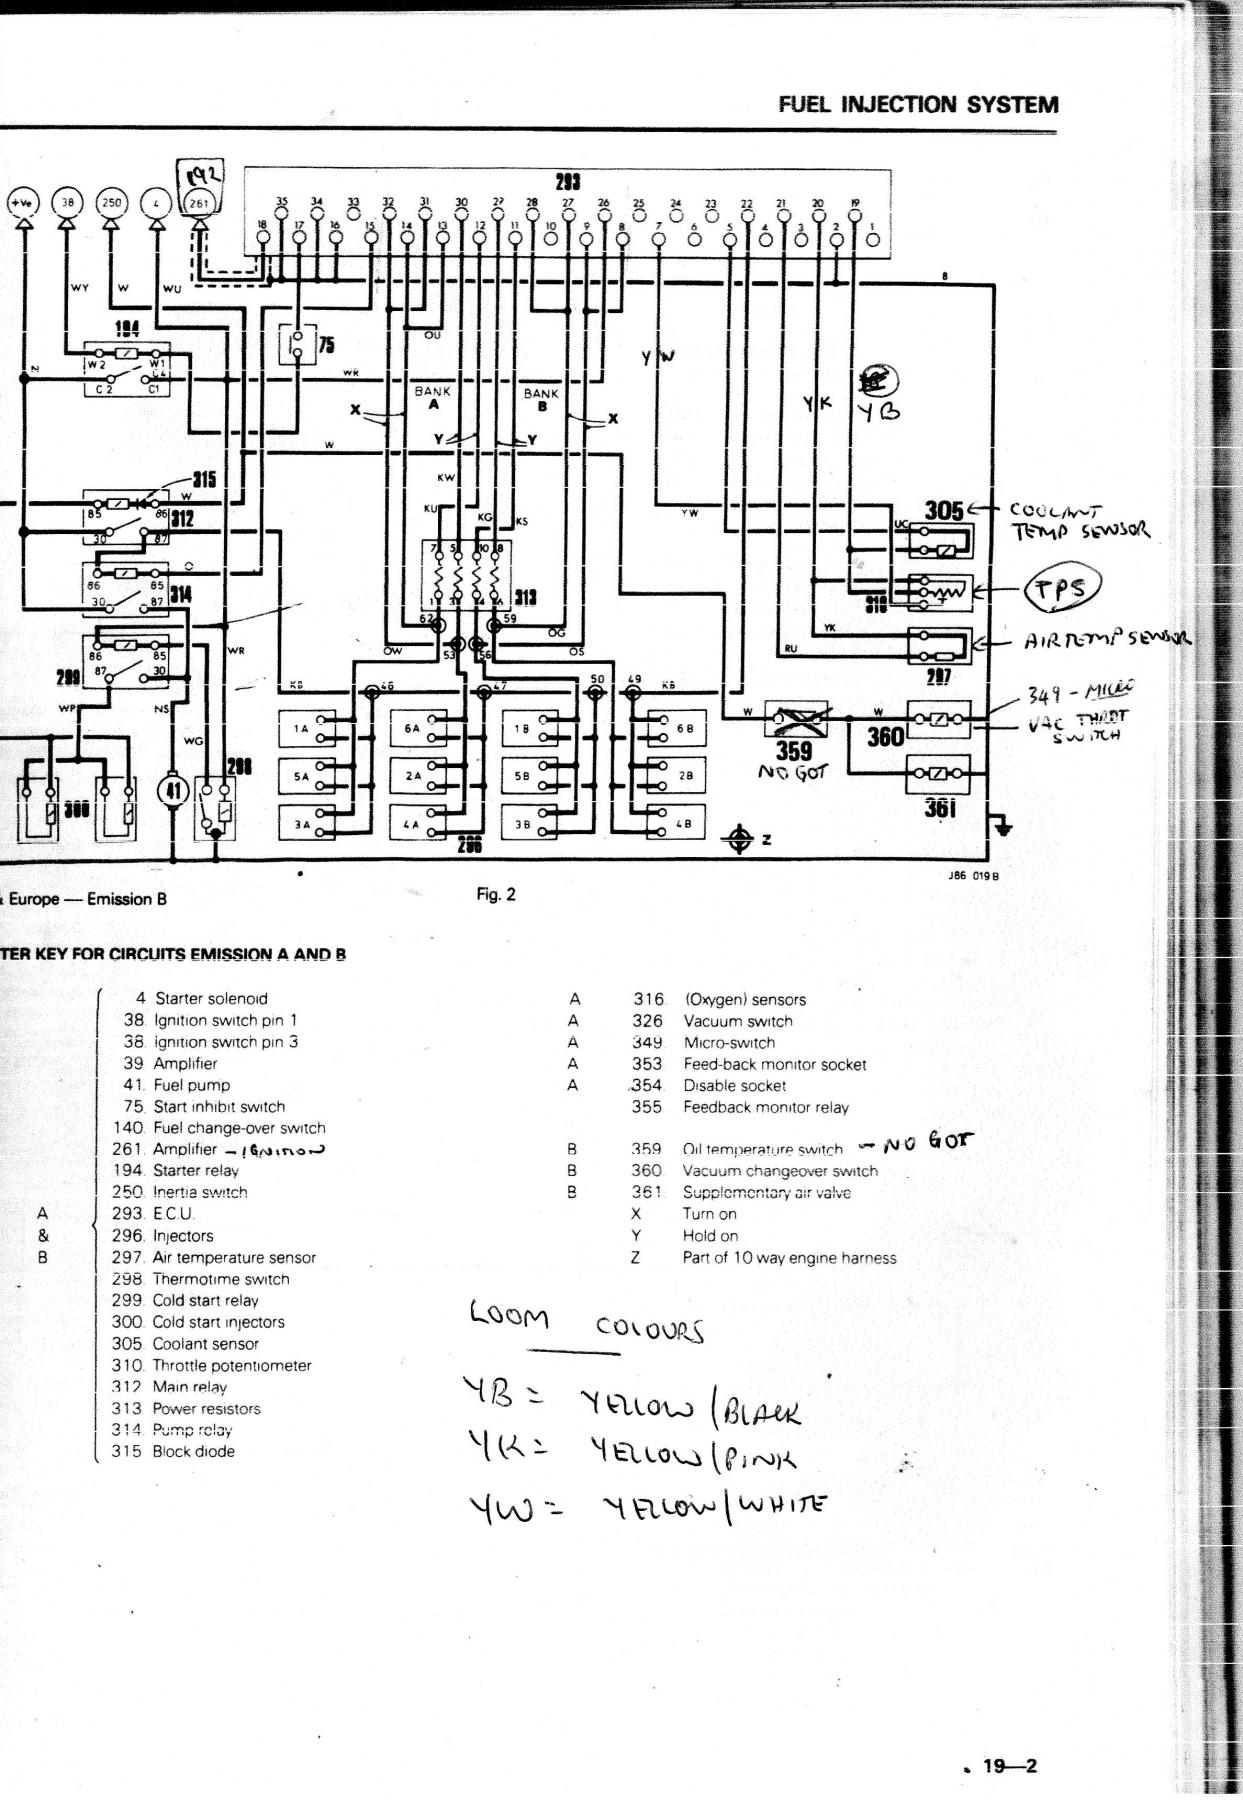 bobcat 463 wiring diagram similiar bobcat wiring diagram keywords Bobcat Hydraulic Schematic scsi wiring diagram dodge ram alarm wiring diagram dodge auto ignition wiring schematics jaguar xj series bobcat hydraulic schematic